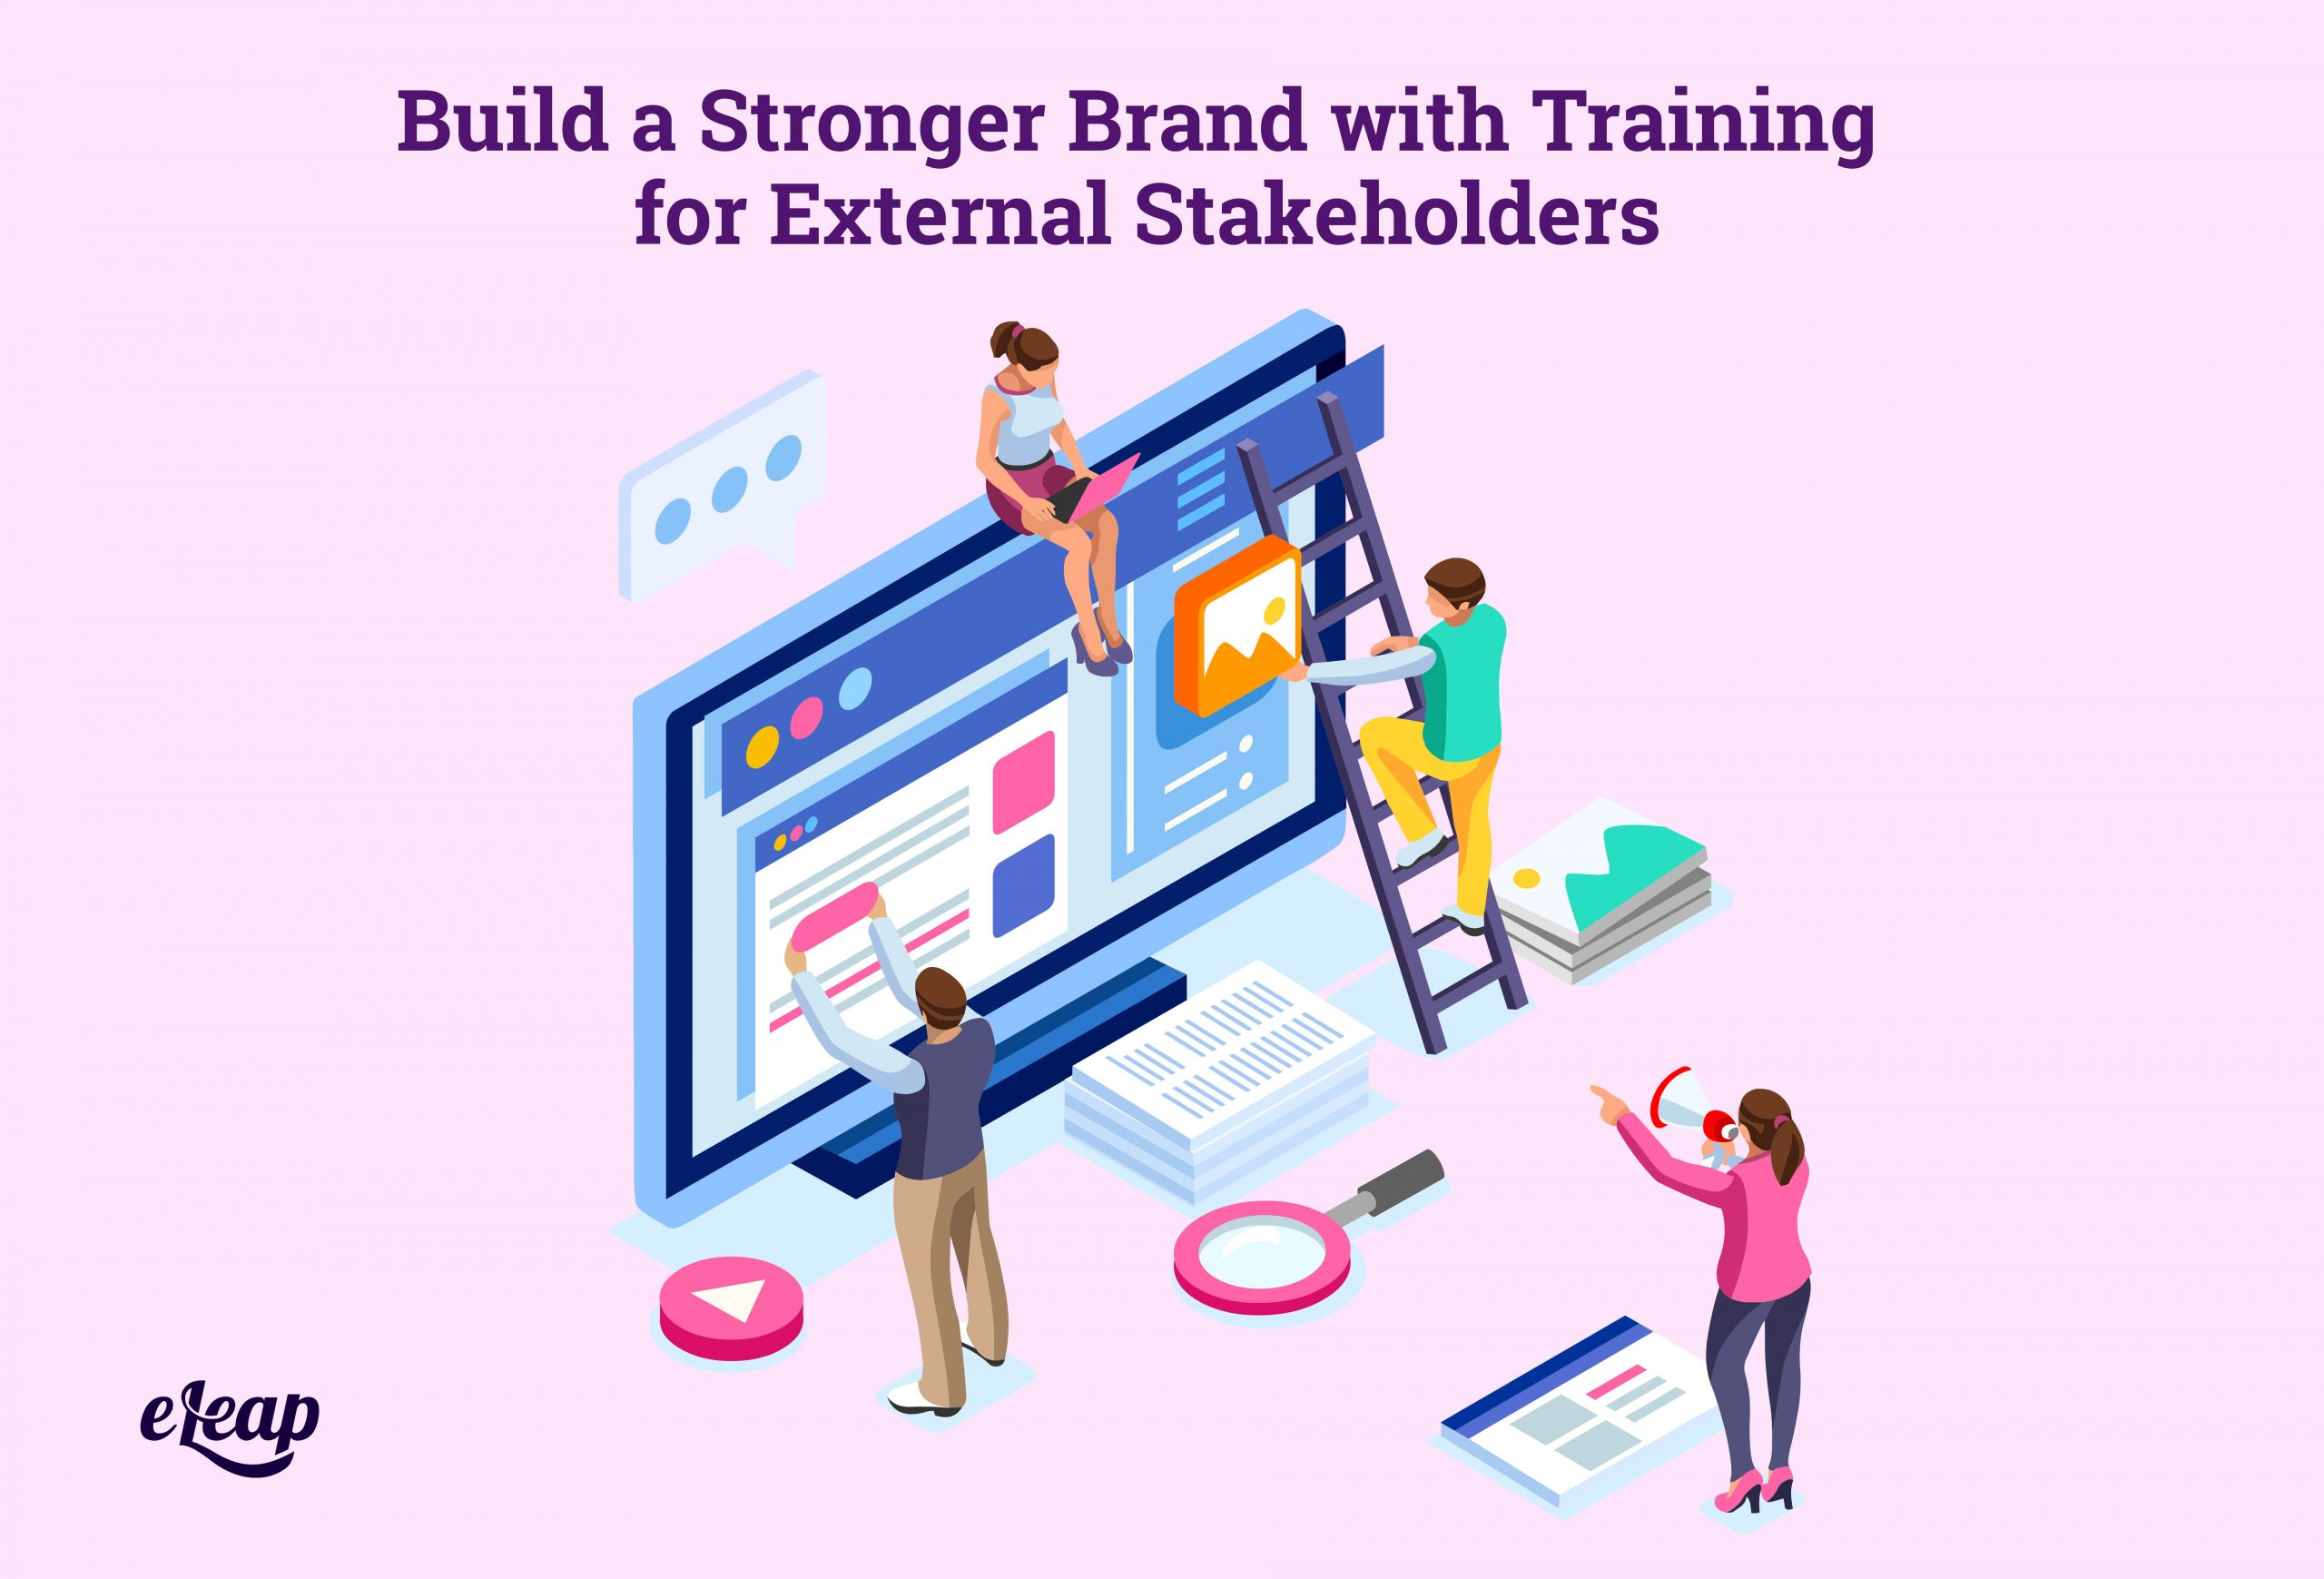 Build a Stronger Brand with Training for External Stakeholders